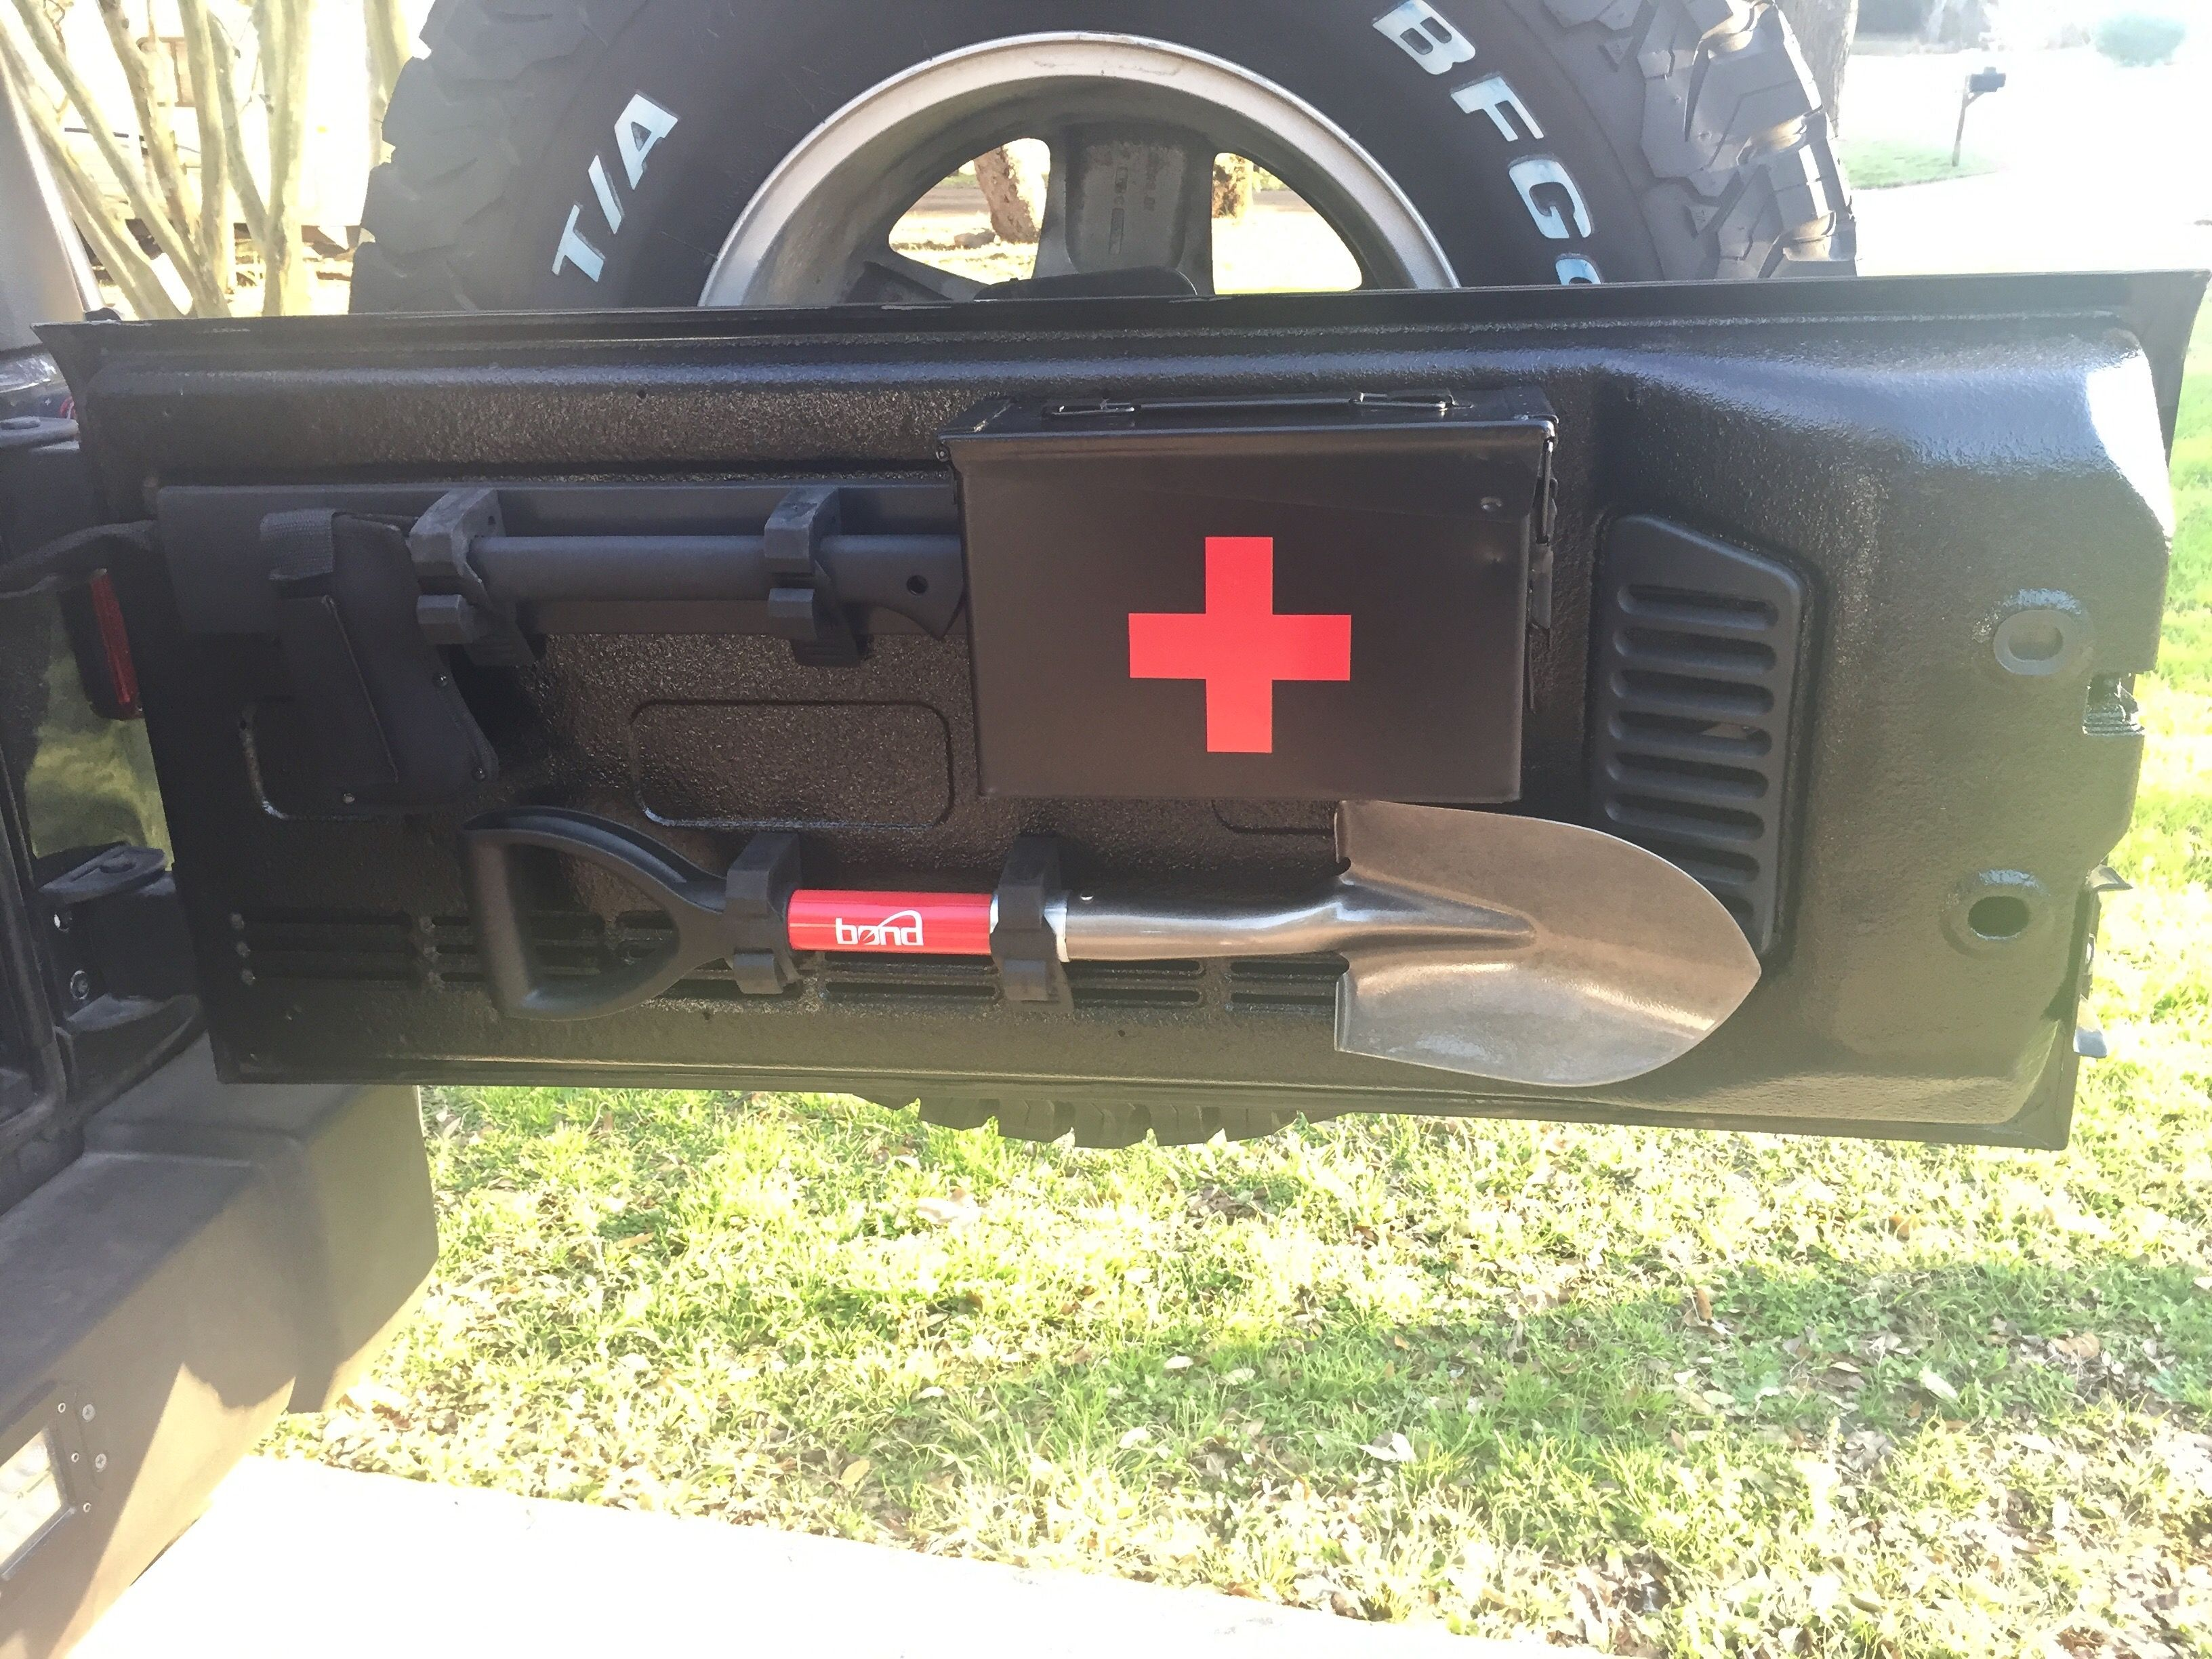 Pin By Jared Westbrook On Camping Jeep Wrangler Jeep Wrangler Tj Accessories 1997 Jeep Wrangler